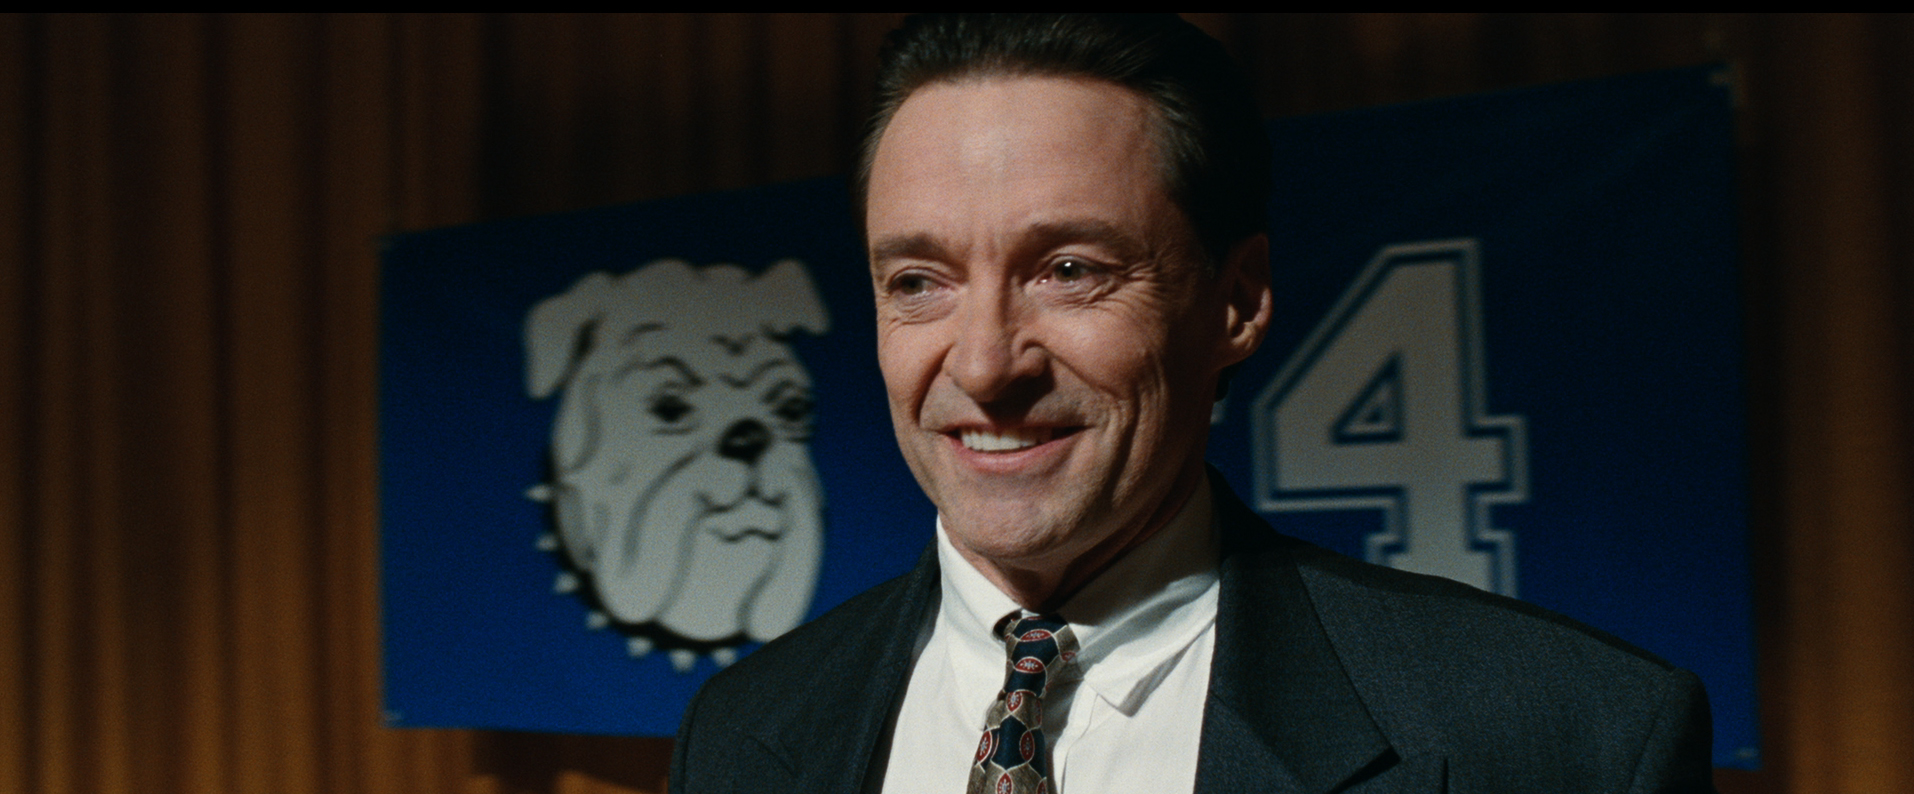 Bad Education: Hugh Jackman in un primo piano